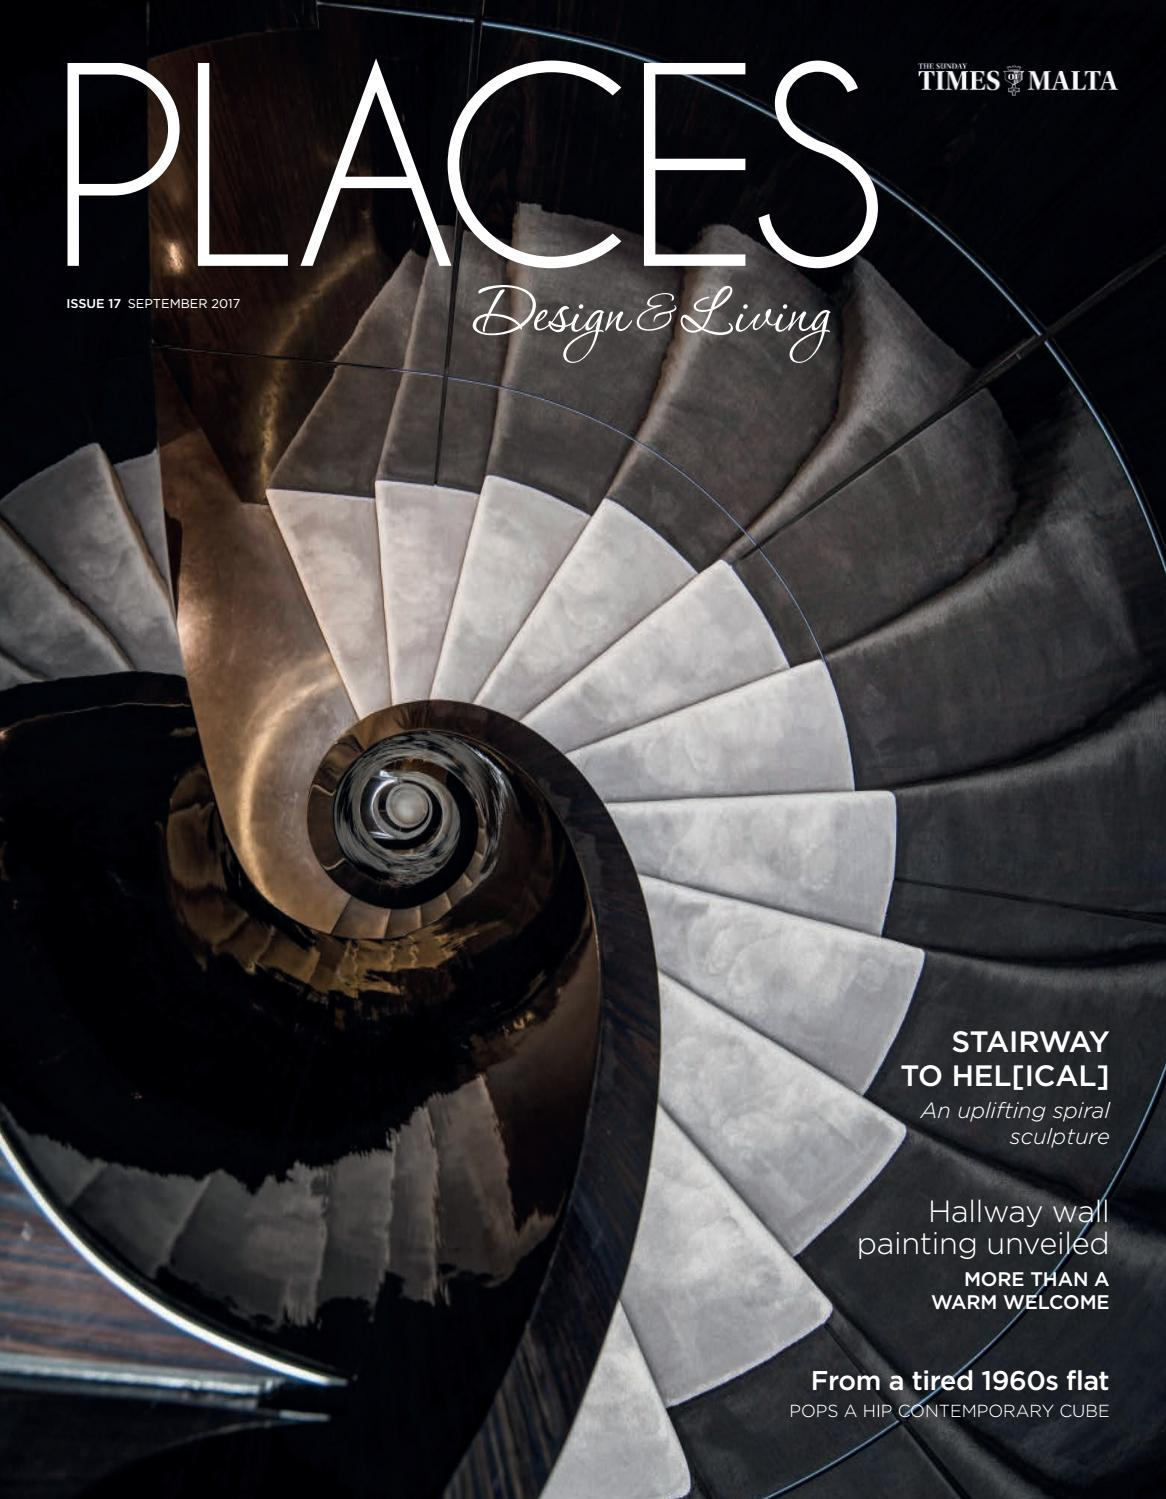 Places Design Living September 2017 By Times Of Malta Issuu Surface Wiring Conduit The Garage Journal Board